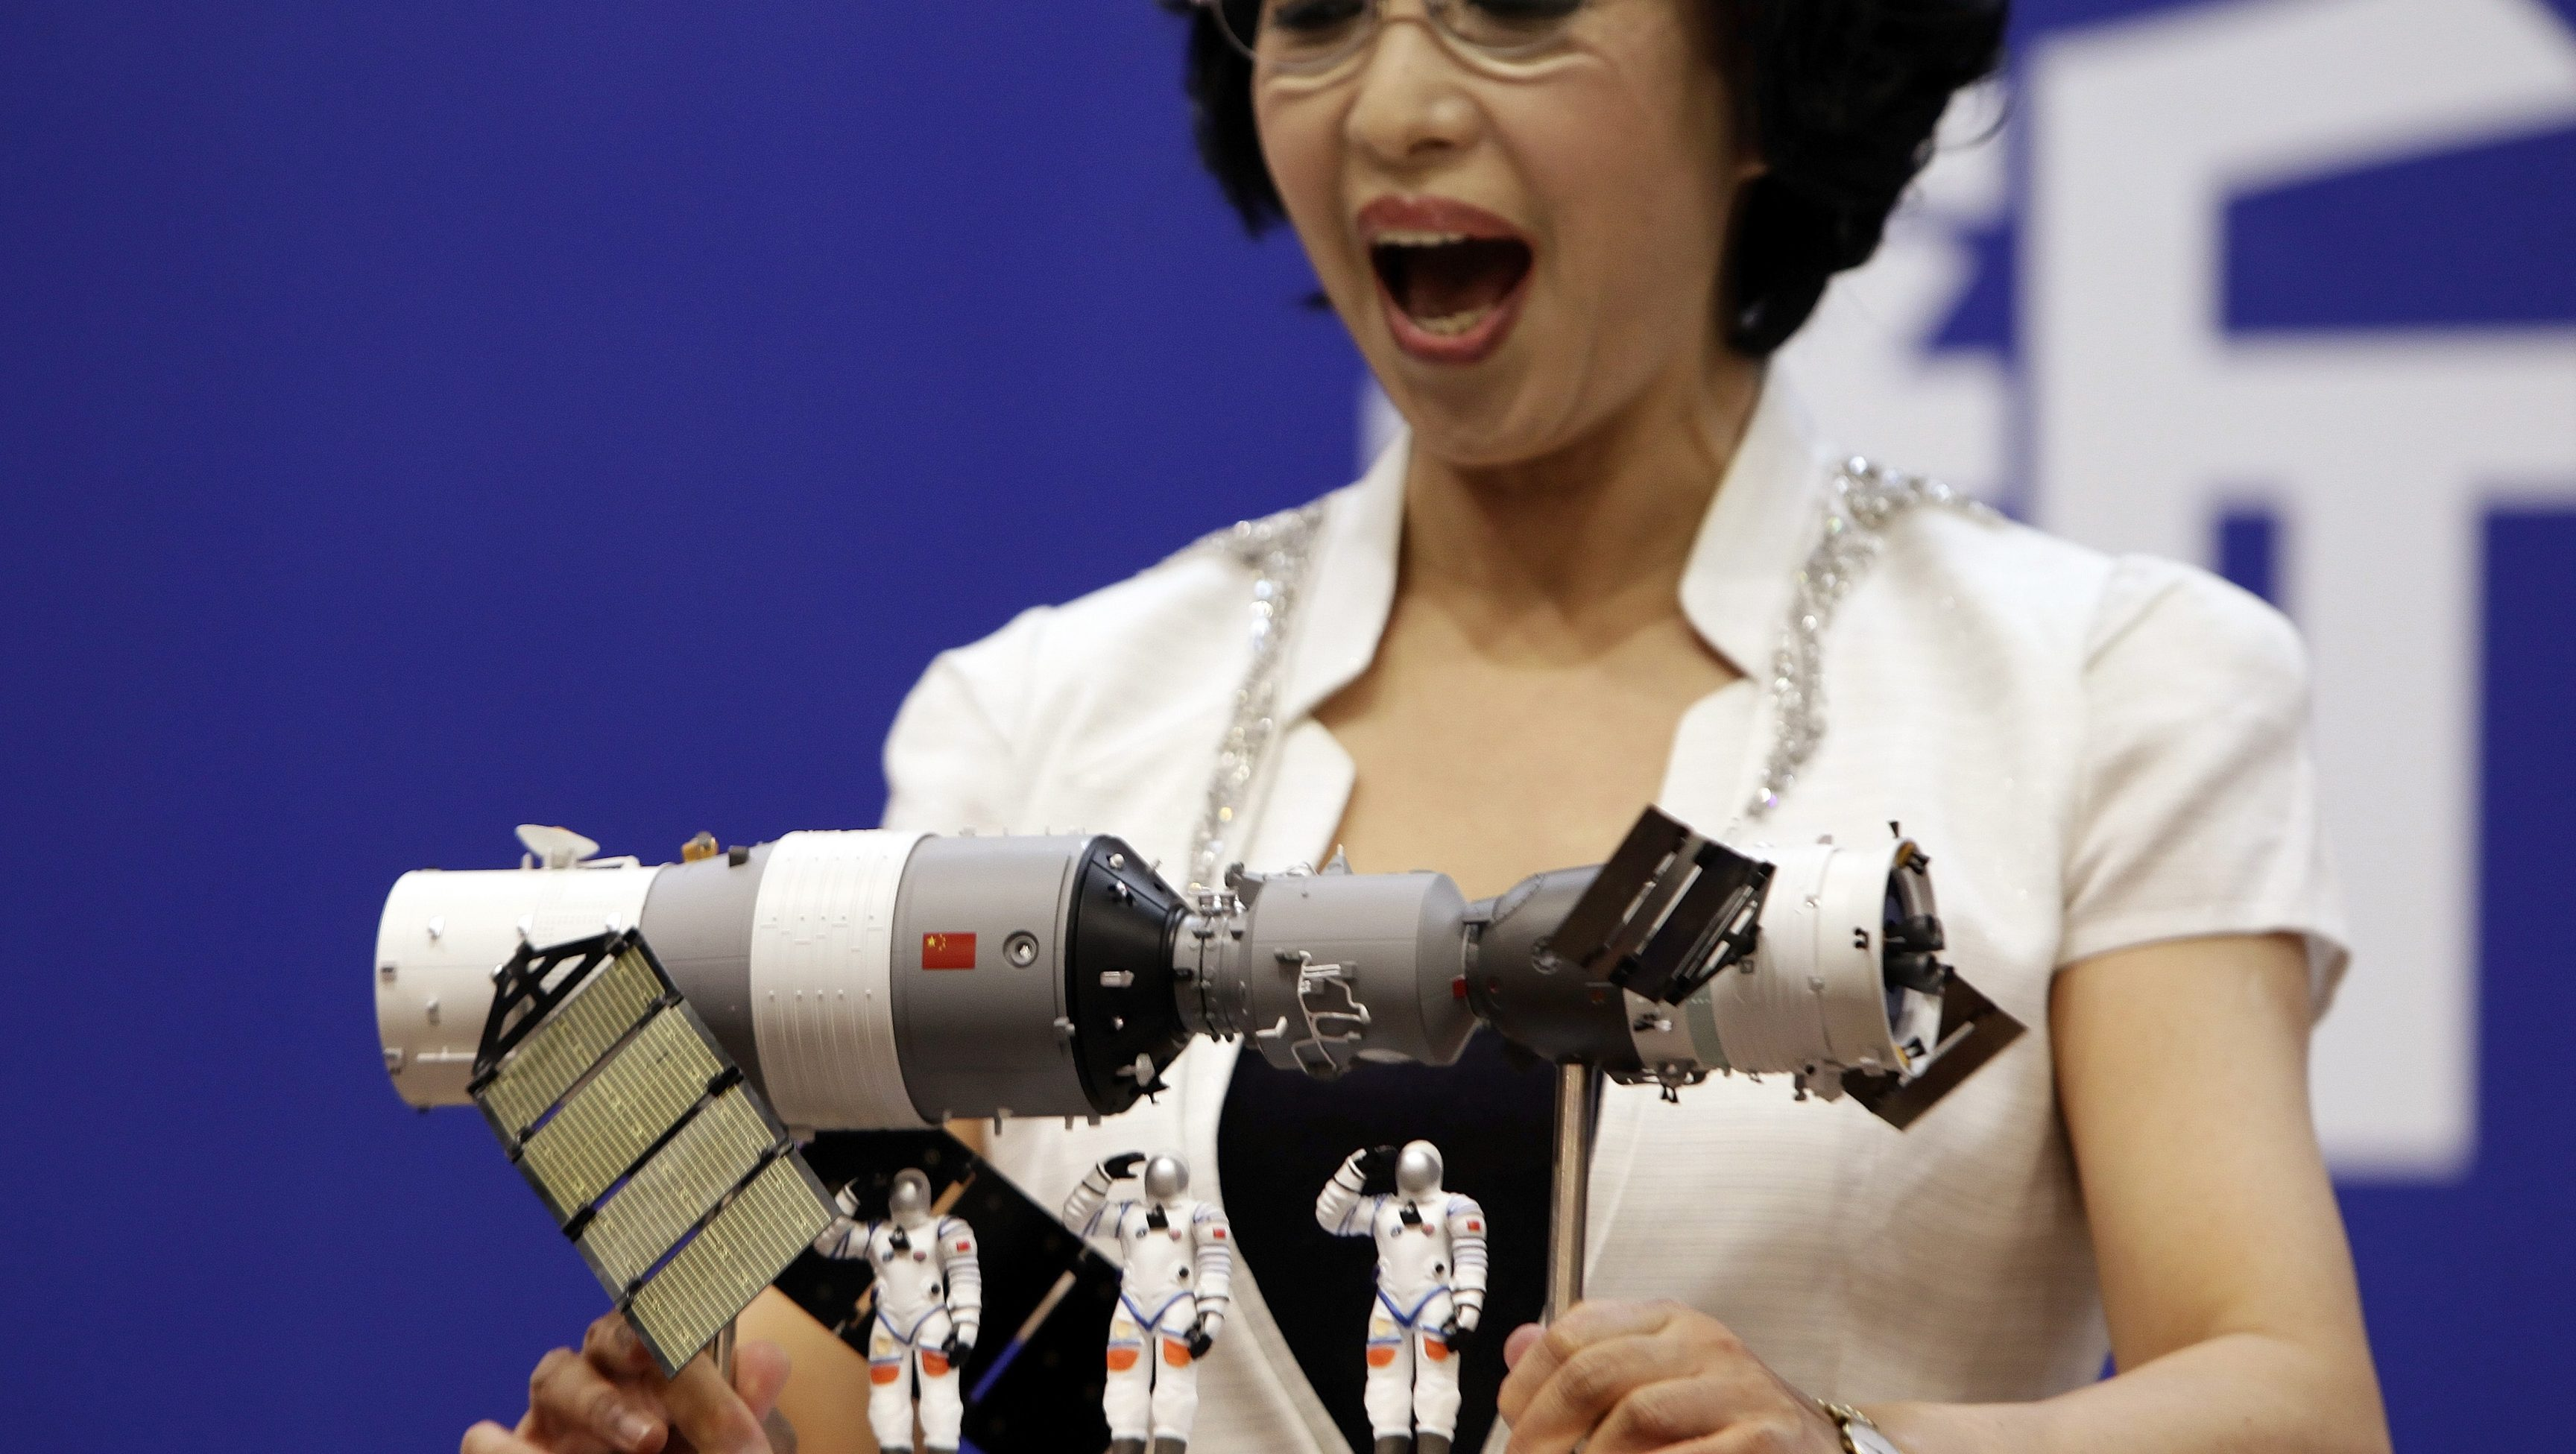 Spokeswoman for China's manned space program Wu Ping reacts as she shows a model of the Shenzhou-9 manned spacecraft,  the orbiting Tiangong-1 space lab module (L) and three Chinese astronauts during  a news conference at Jiuquan Satellite Launch Center, in northwest China's Gansu province, June 15, 2012. The Shenzhou-9 manned spacecraft will be launched at 18:37 (10:37 GMT) on June 16, 2012, according to a decision made by China's manned space docking program headquarters, Xinhua News Agency reported. REUTERS/Jason Lee (CHINA - Tags: SCIENCE TECHNOLOGY) - GM2E86F18YS01